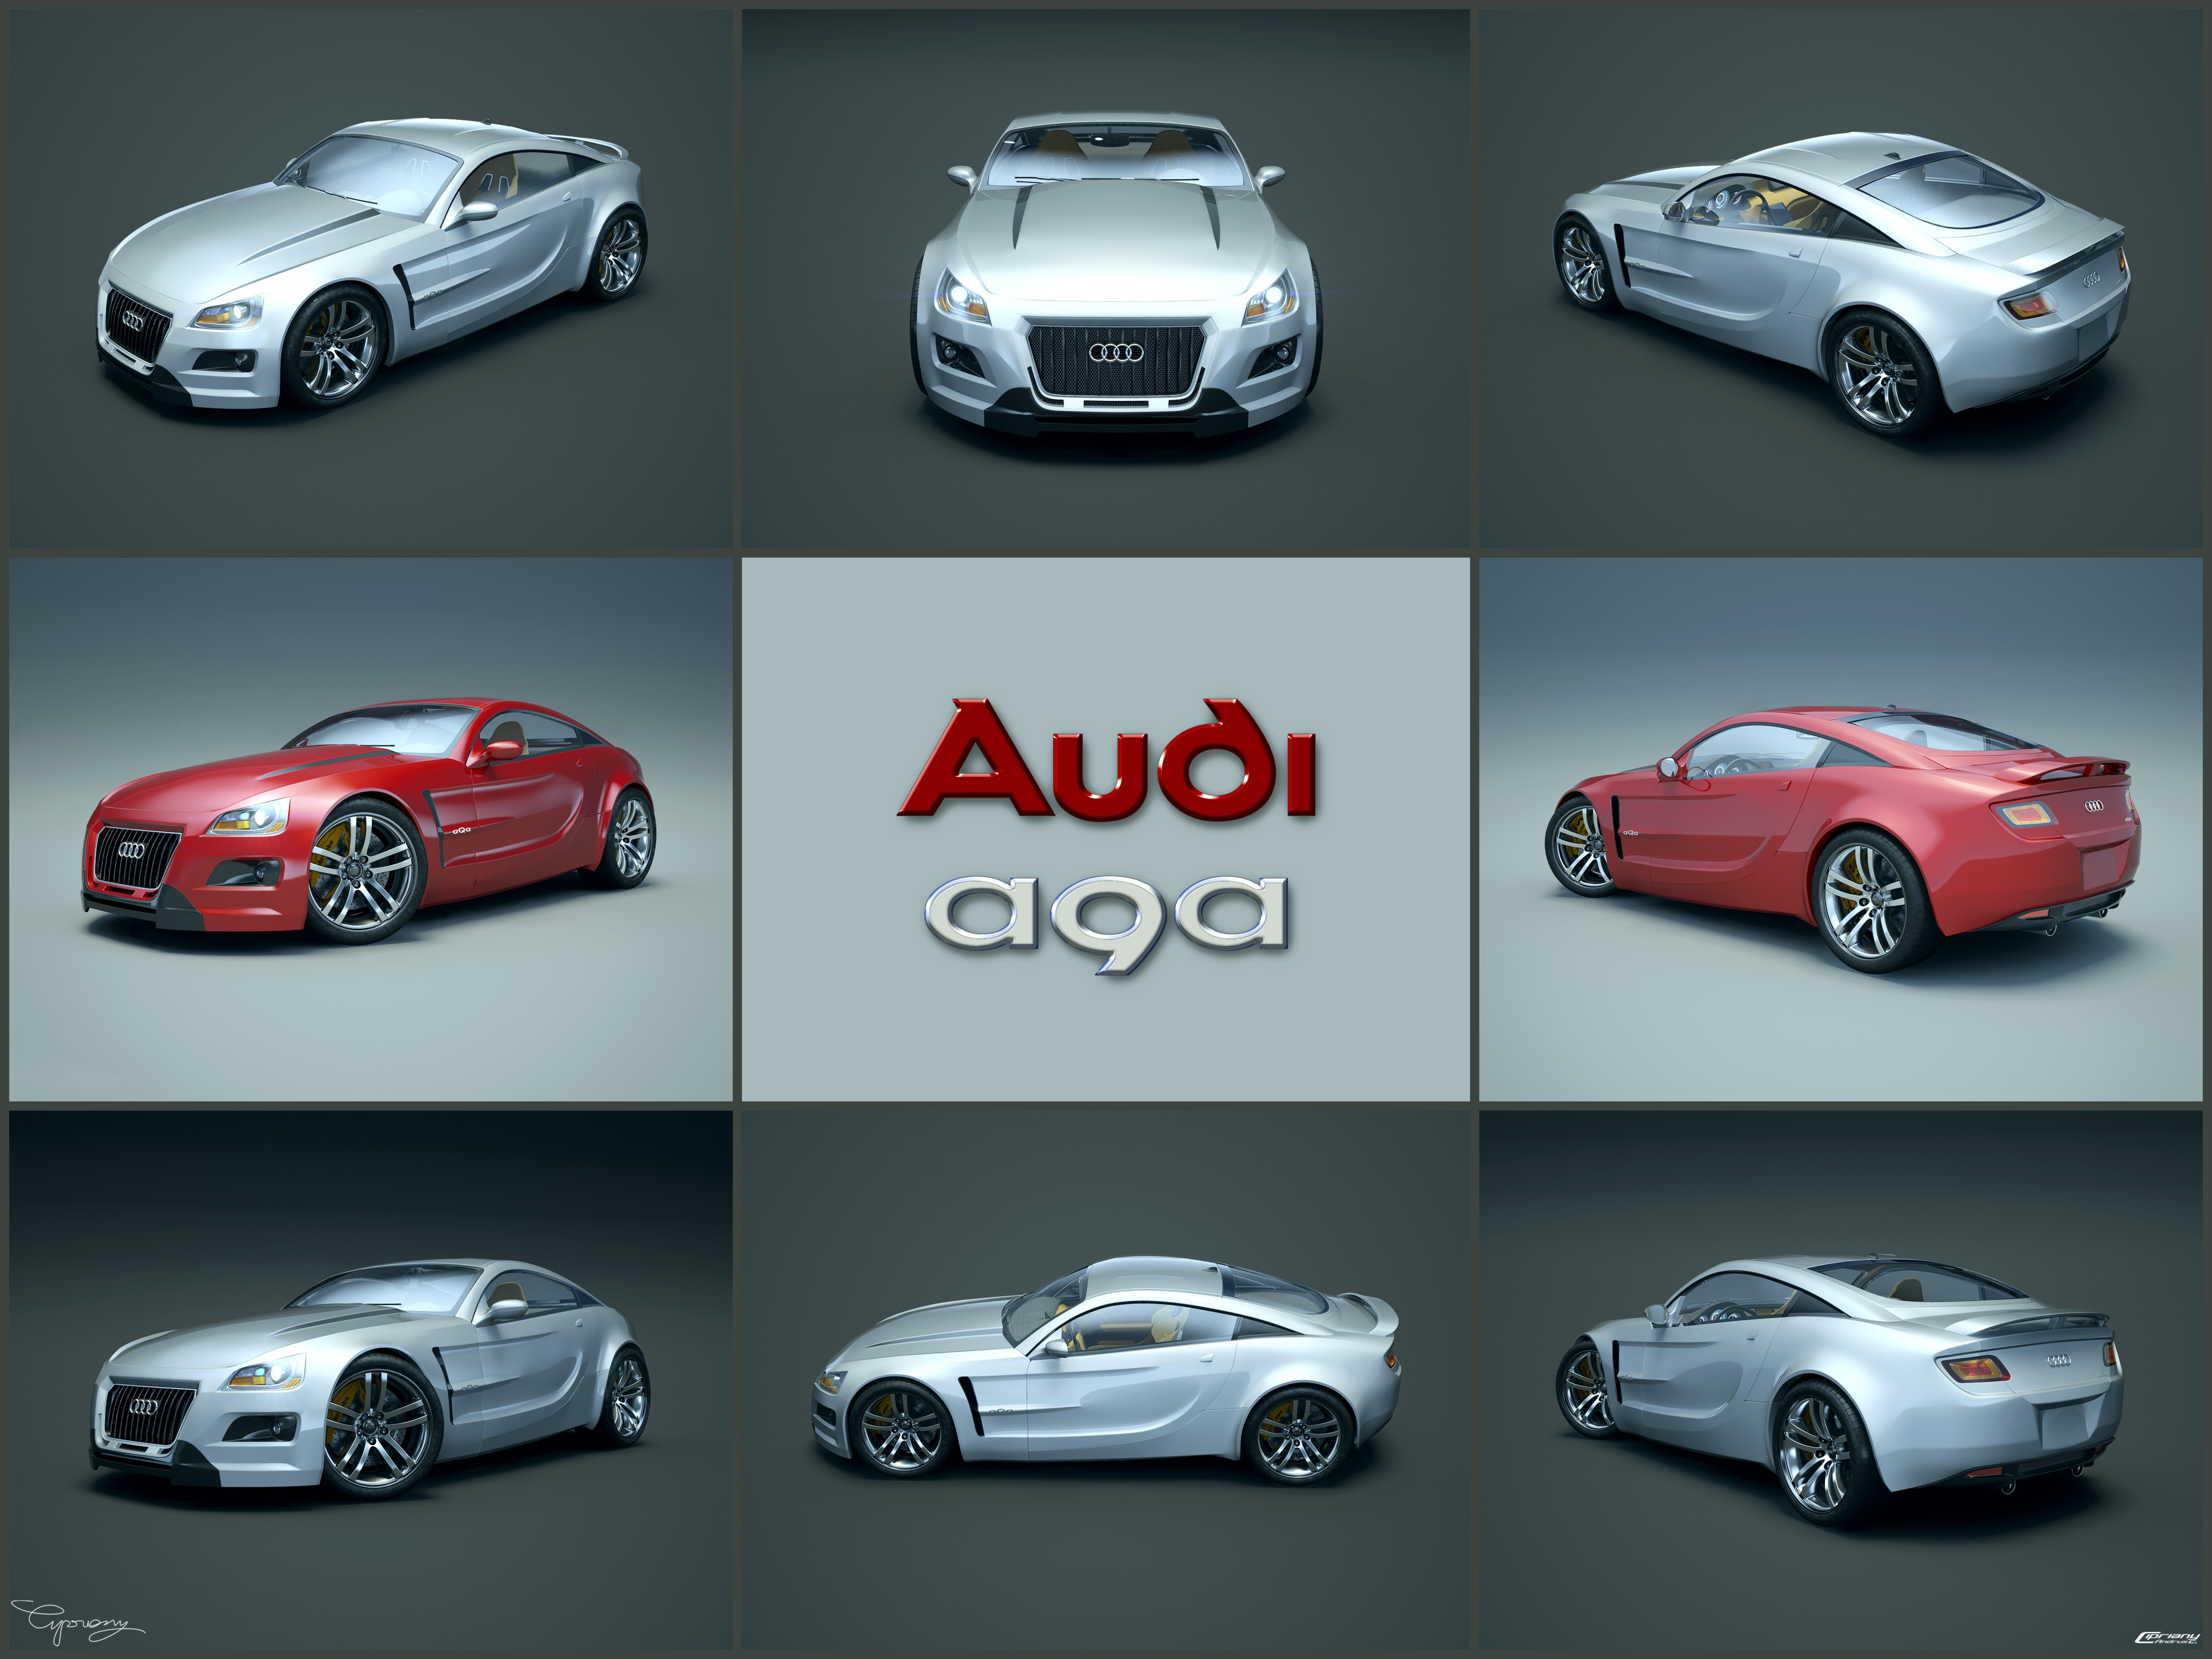 Audi aQa version-3 14 by cipriany